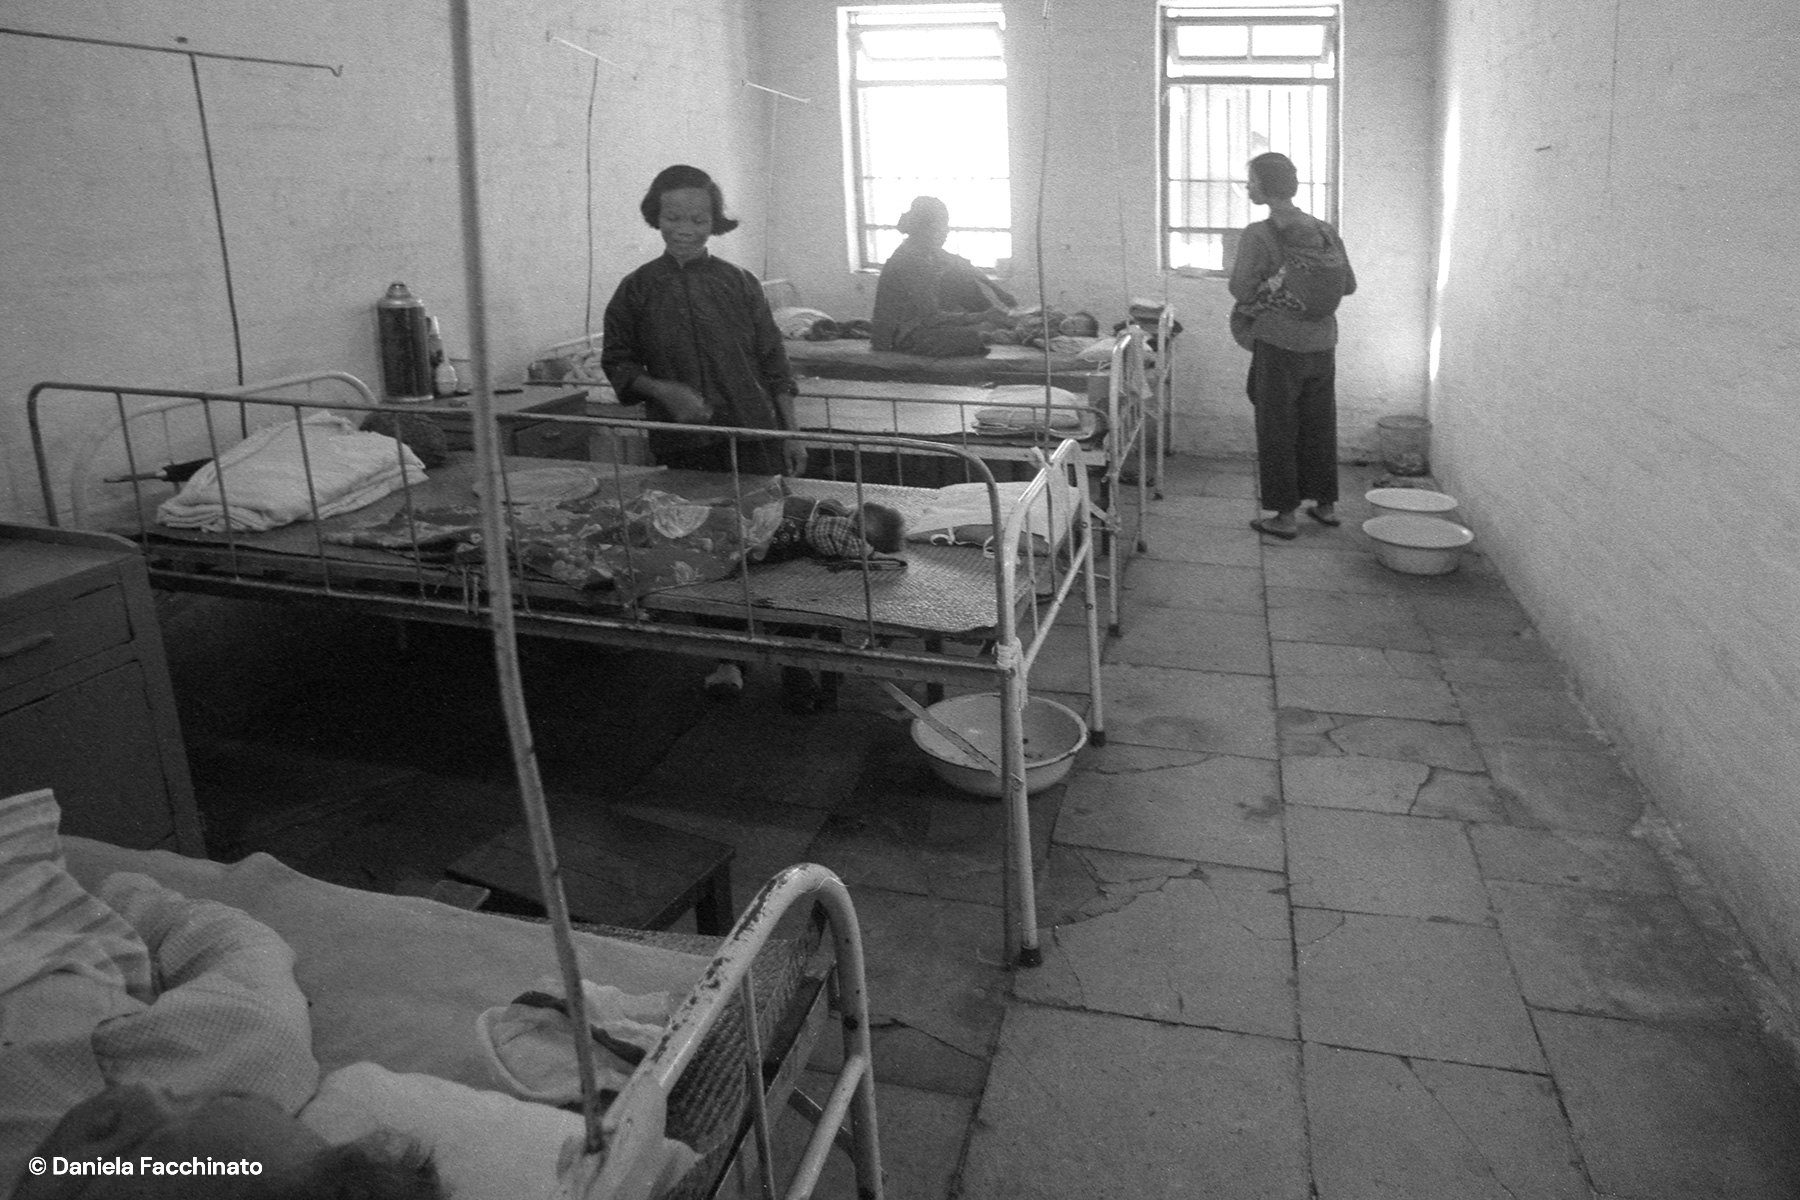 Hunan province, China, 1976. The small hospital of an agricultural commune